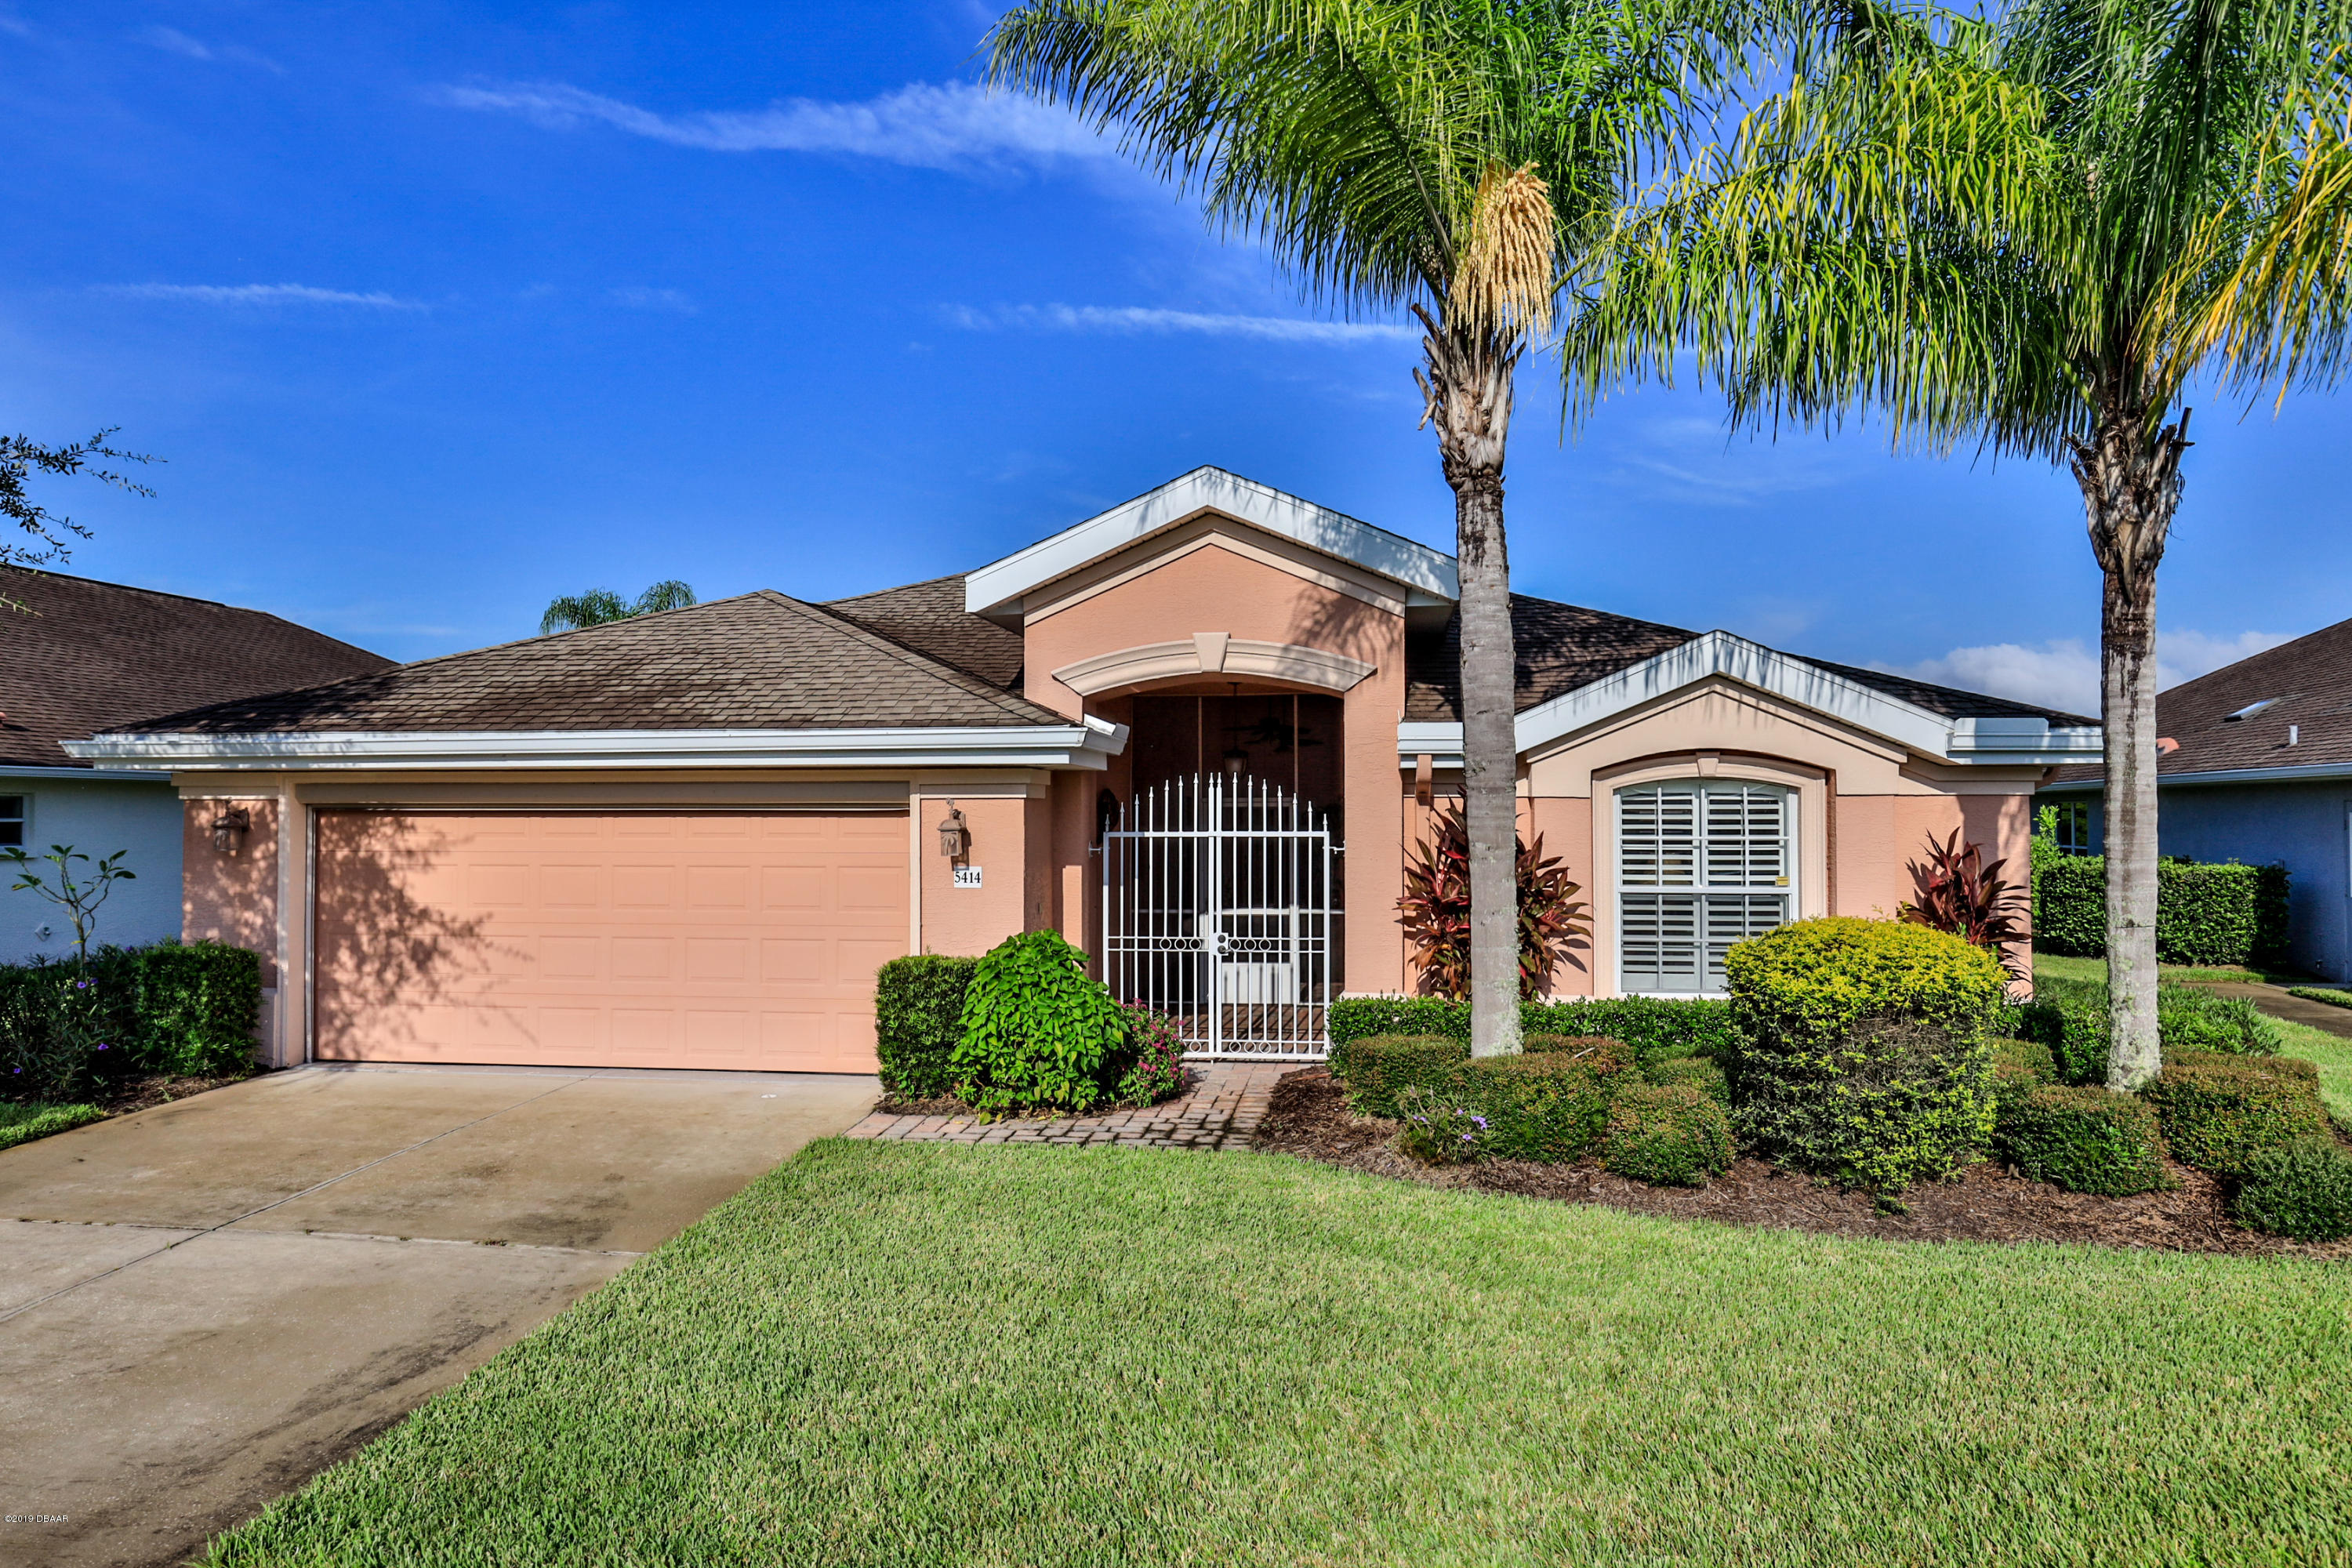 Photo of 5414 Daylilly Street, Port Orange, FL 32128